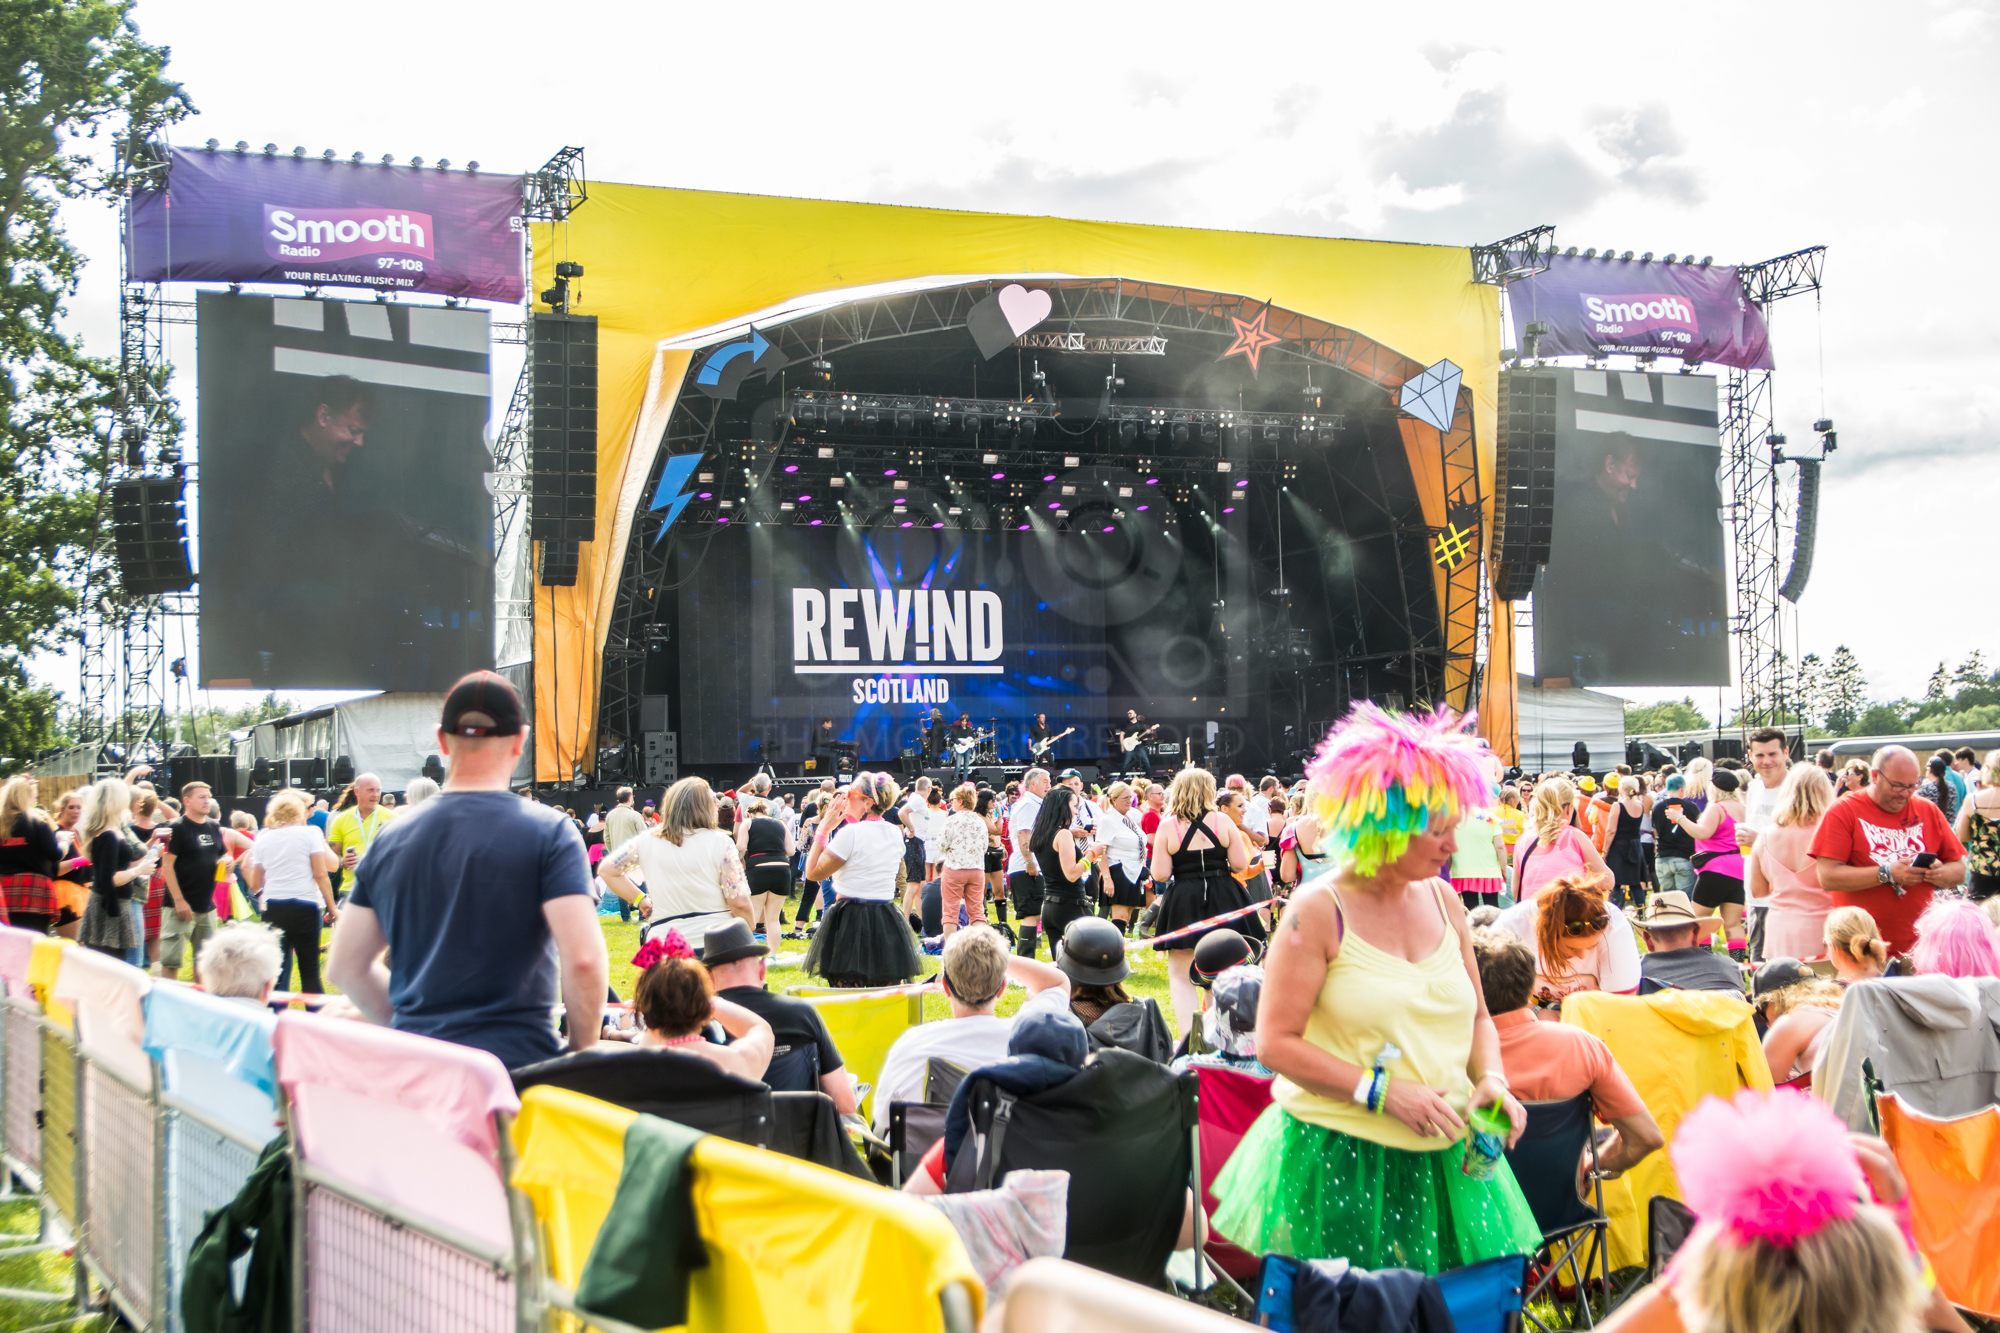 REWIND FESTIVAL SCOTLAND! 2019  PICTURE BY: STEPHEN WILSON PHOTOGRAPHY